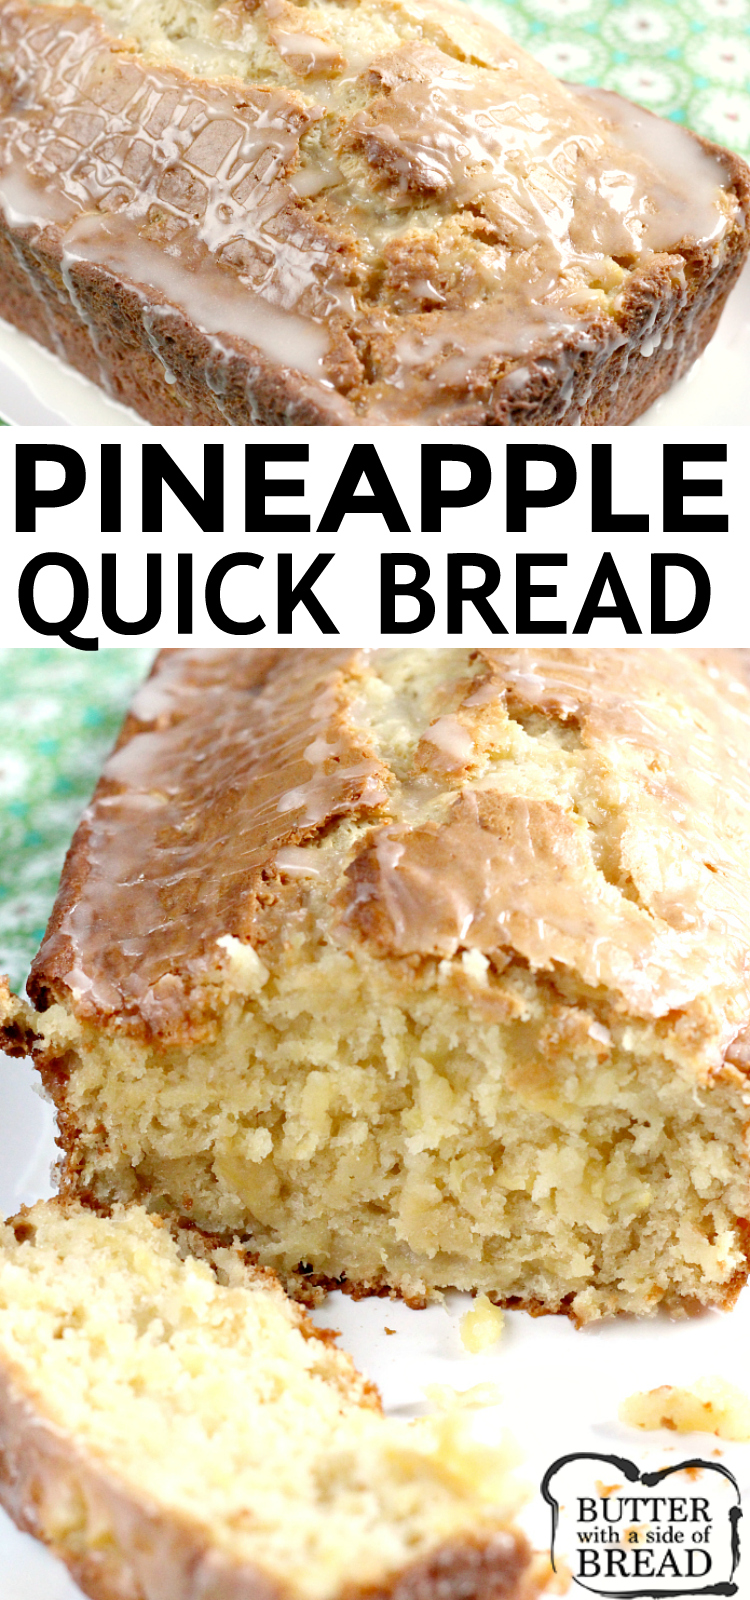 Pineapple Quick Bread is sweet, moist and absolutely delicious, especially with a simple pineapple glaze on top! This quick bread is made with crushed pineapple, cream cheese, sour cream and a few other basic ingredients.